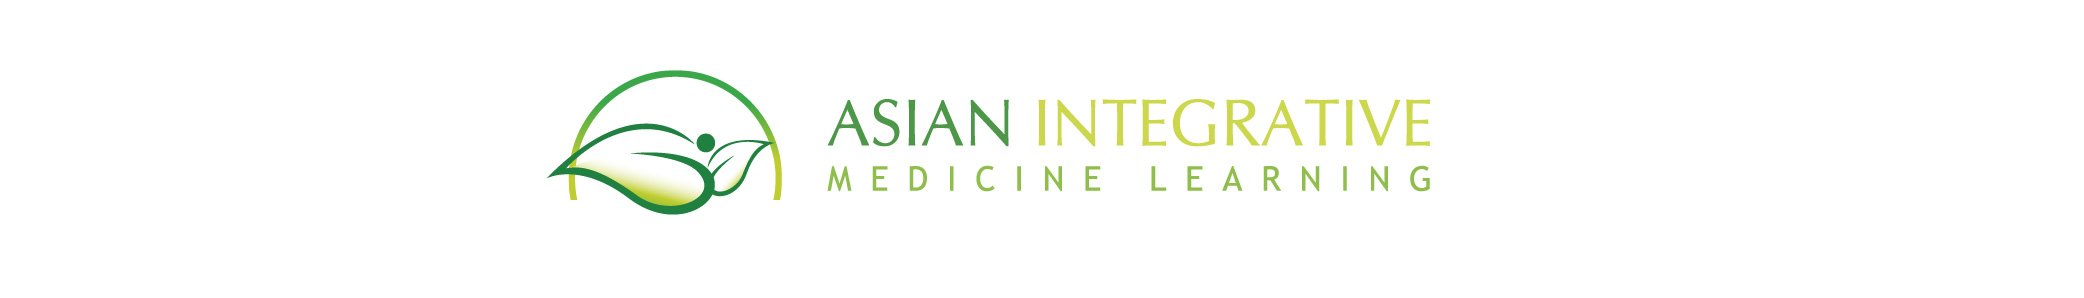 Asian Integrative Medicine Learning